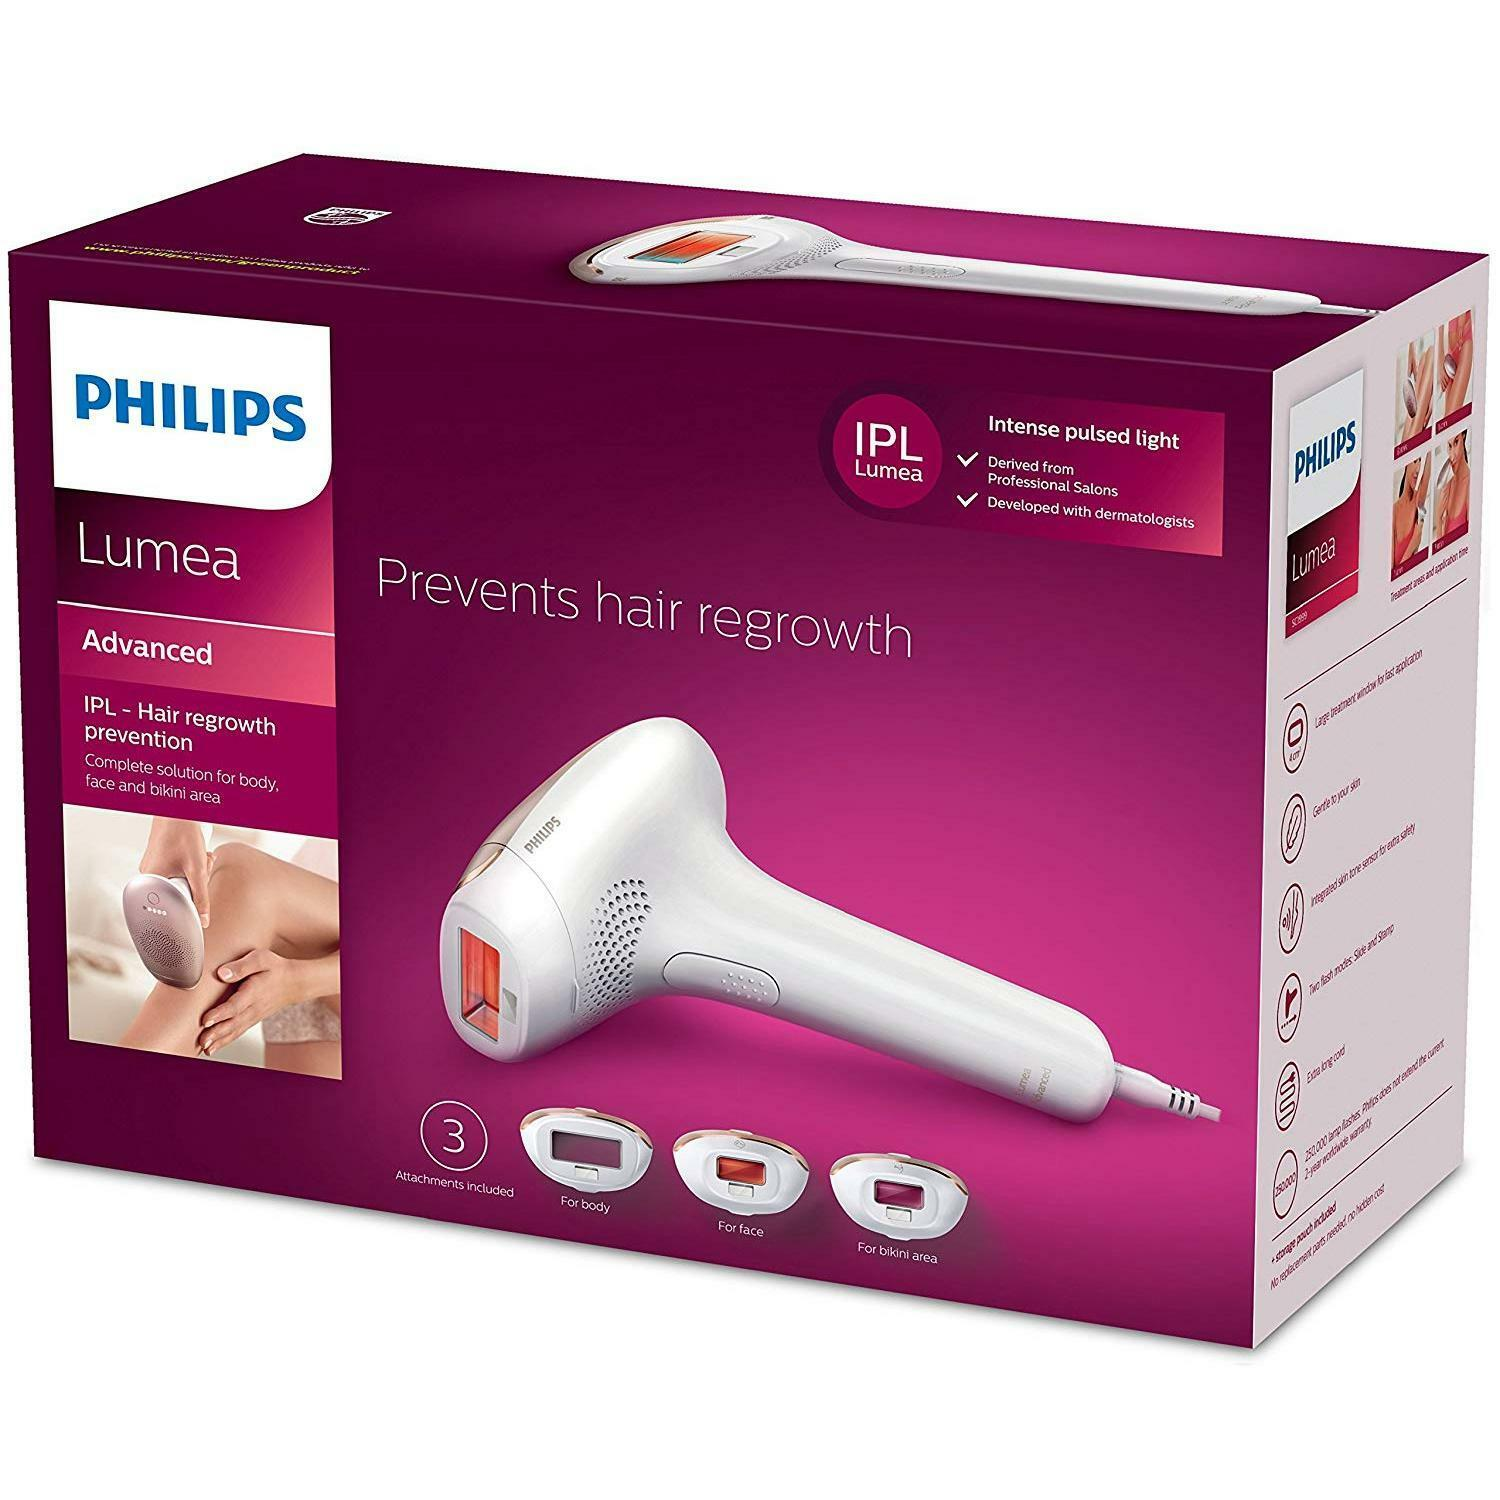 Philips Lumea Advanced SC1999/00 IPL Hair Removal System for